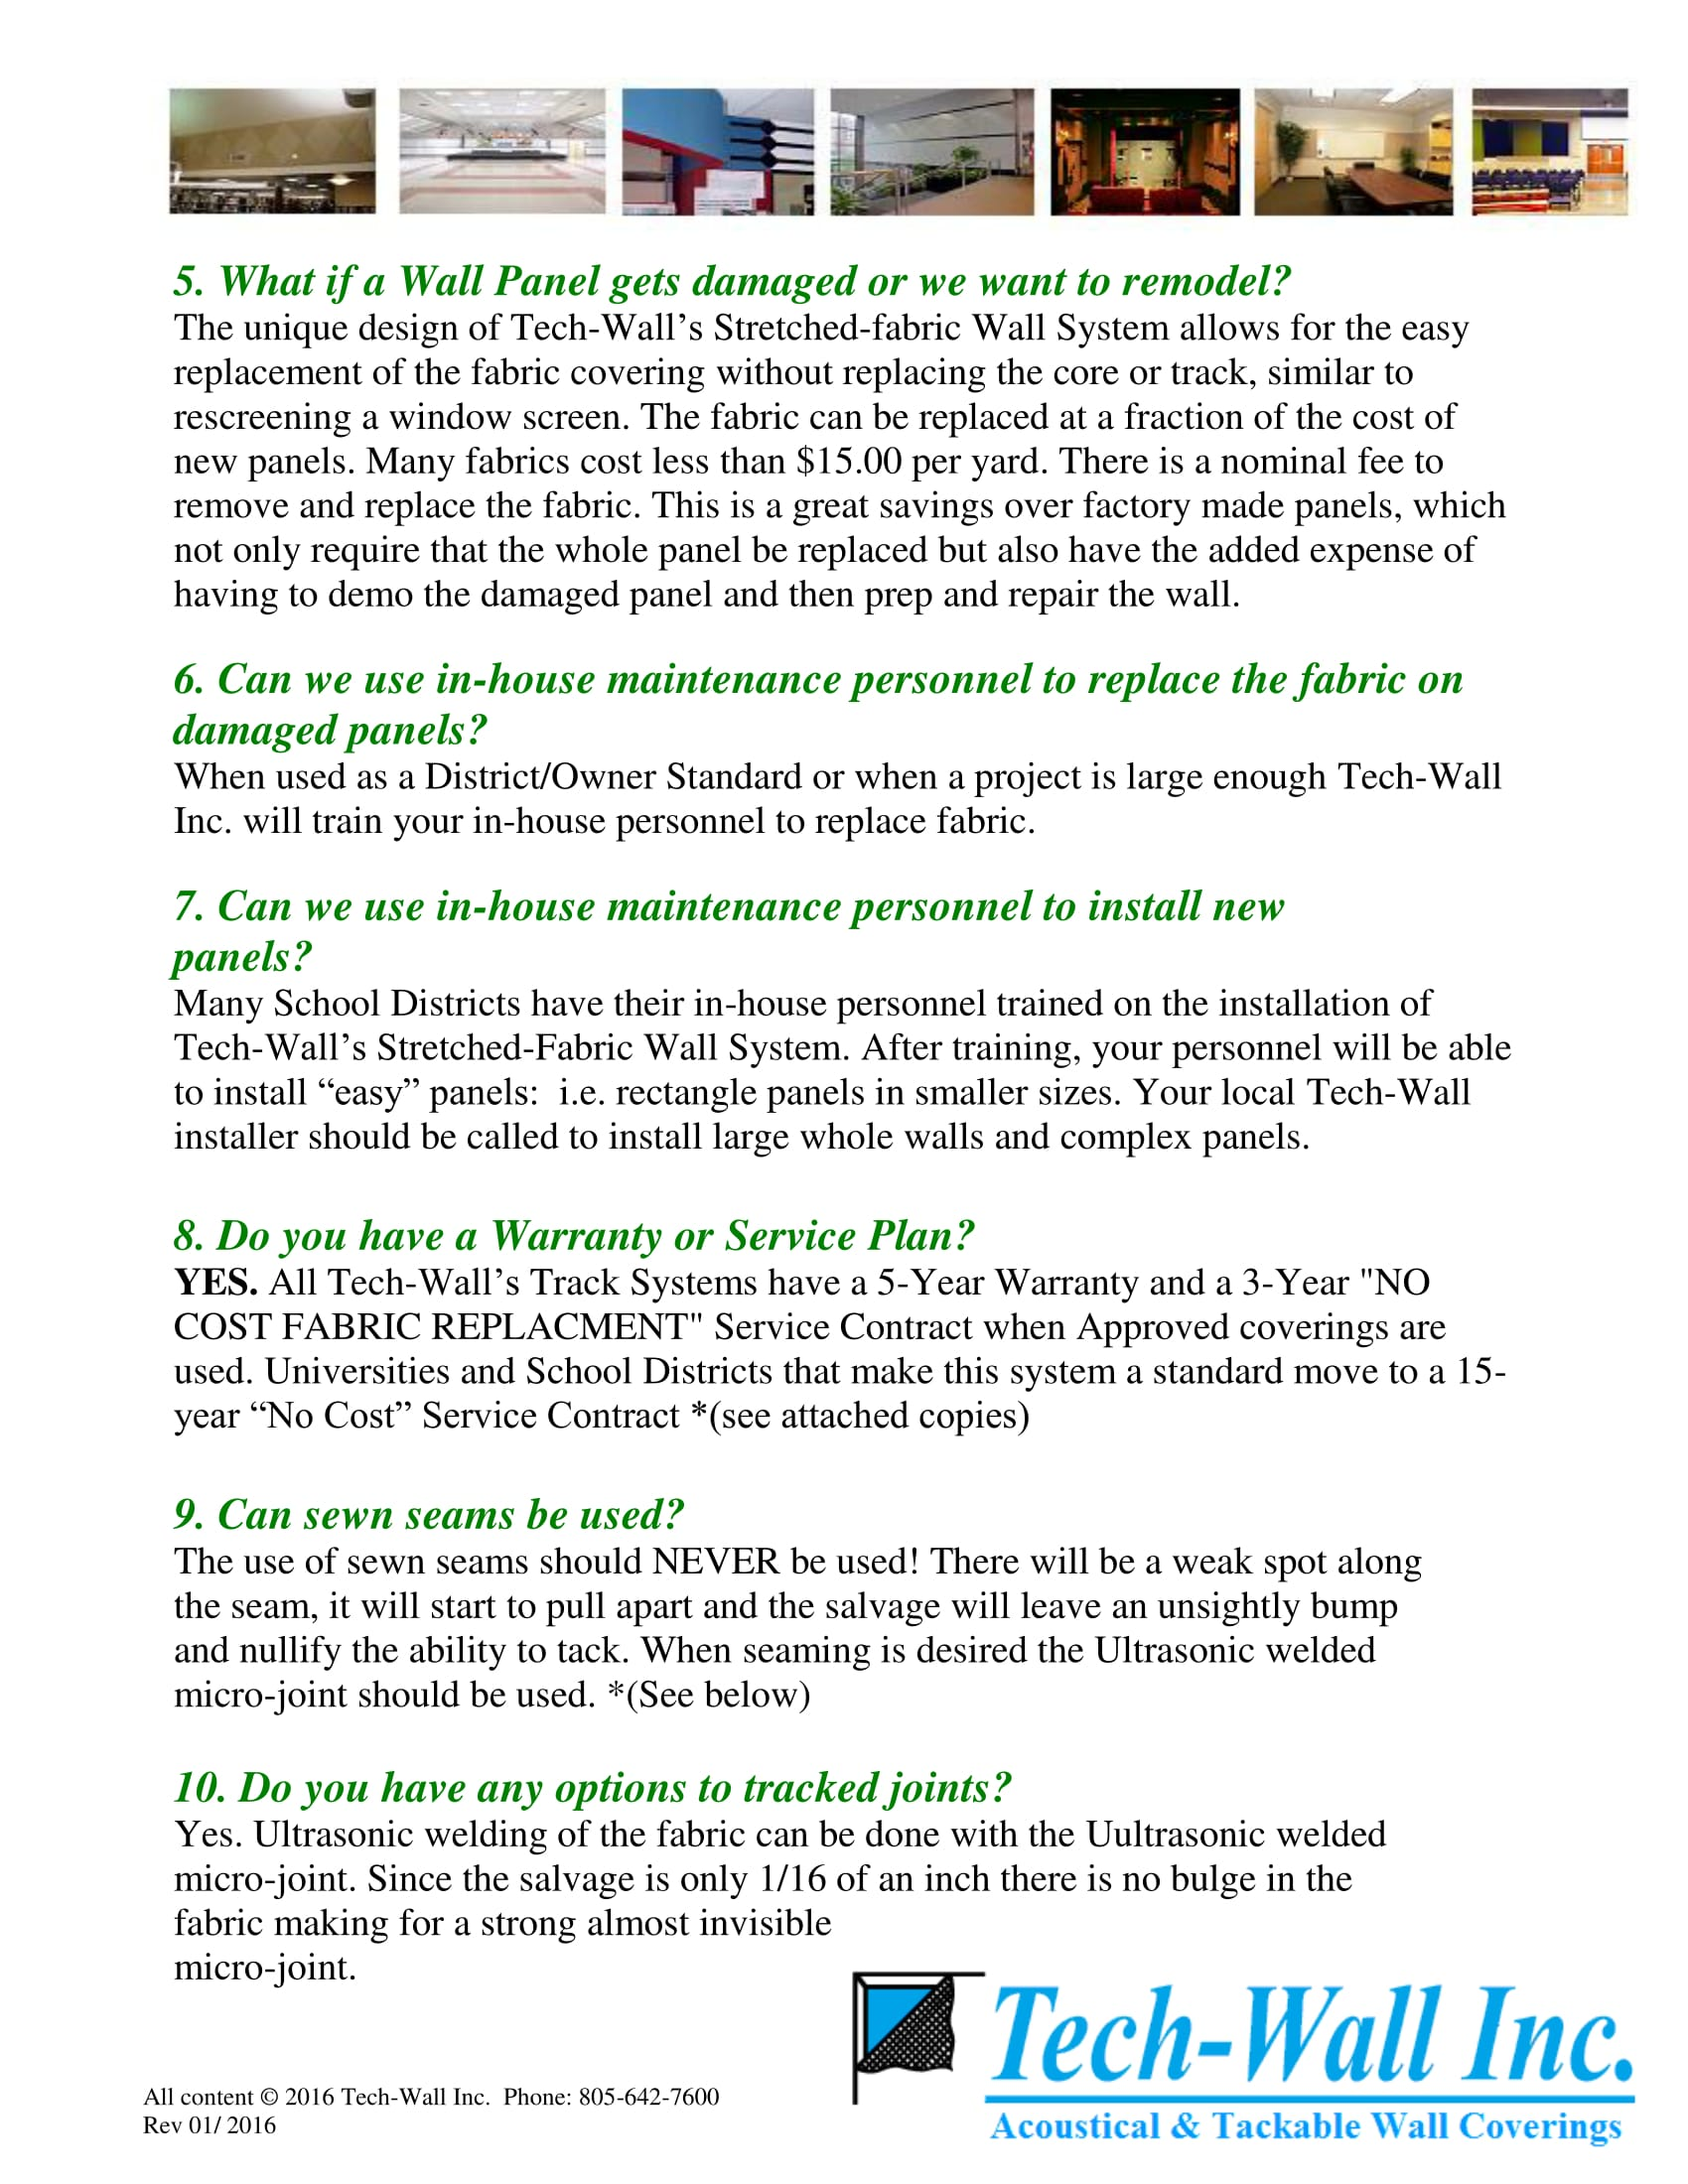 frequently-asked-questions-3-pages-2.jpg